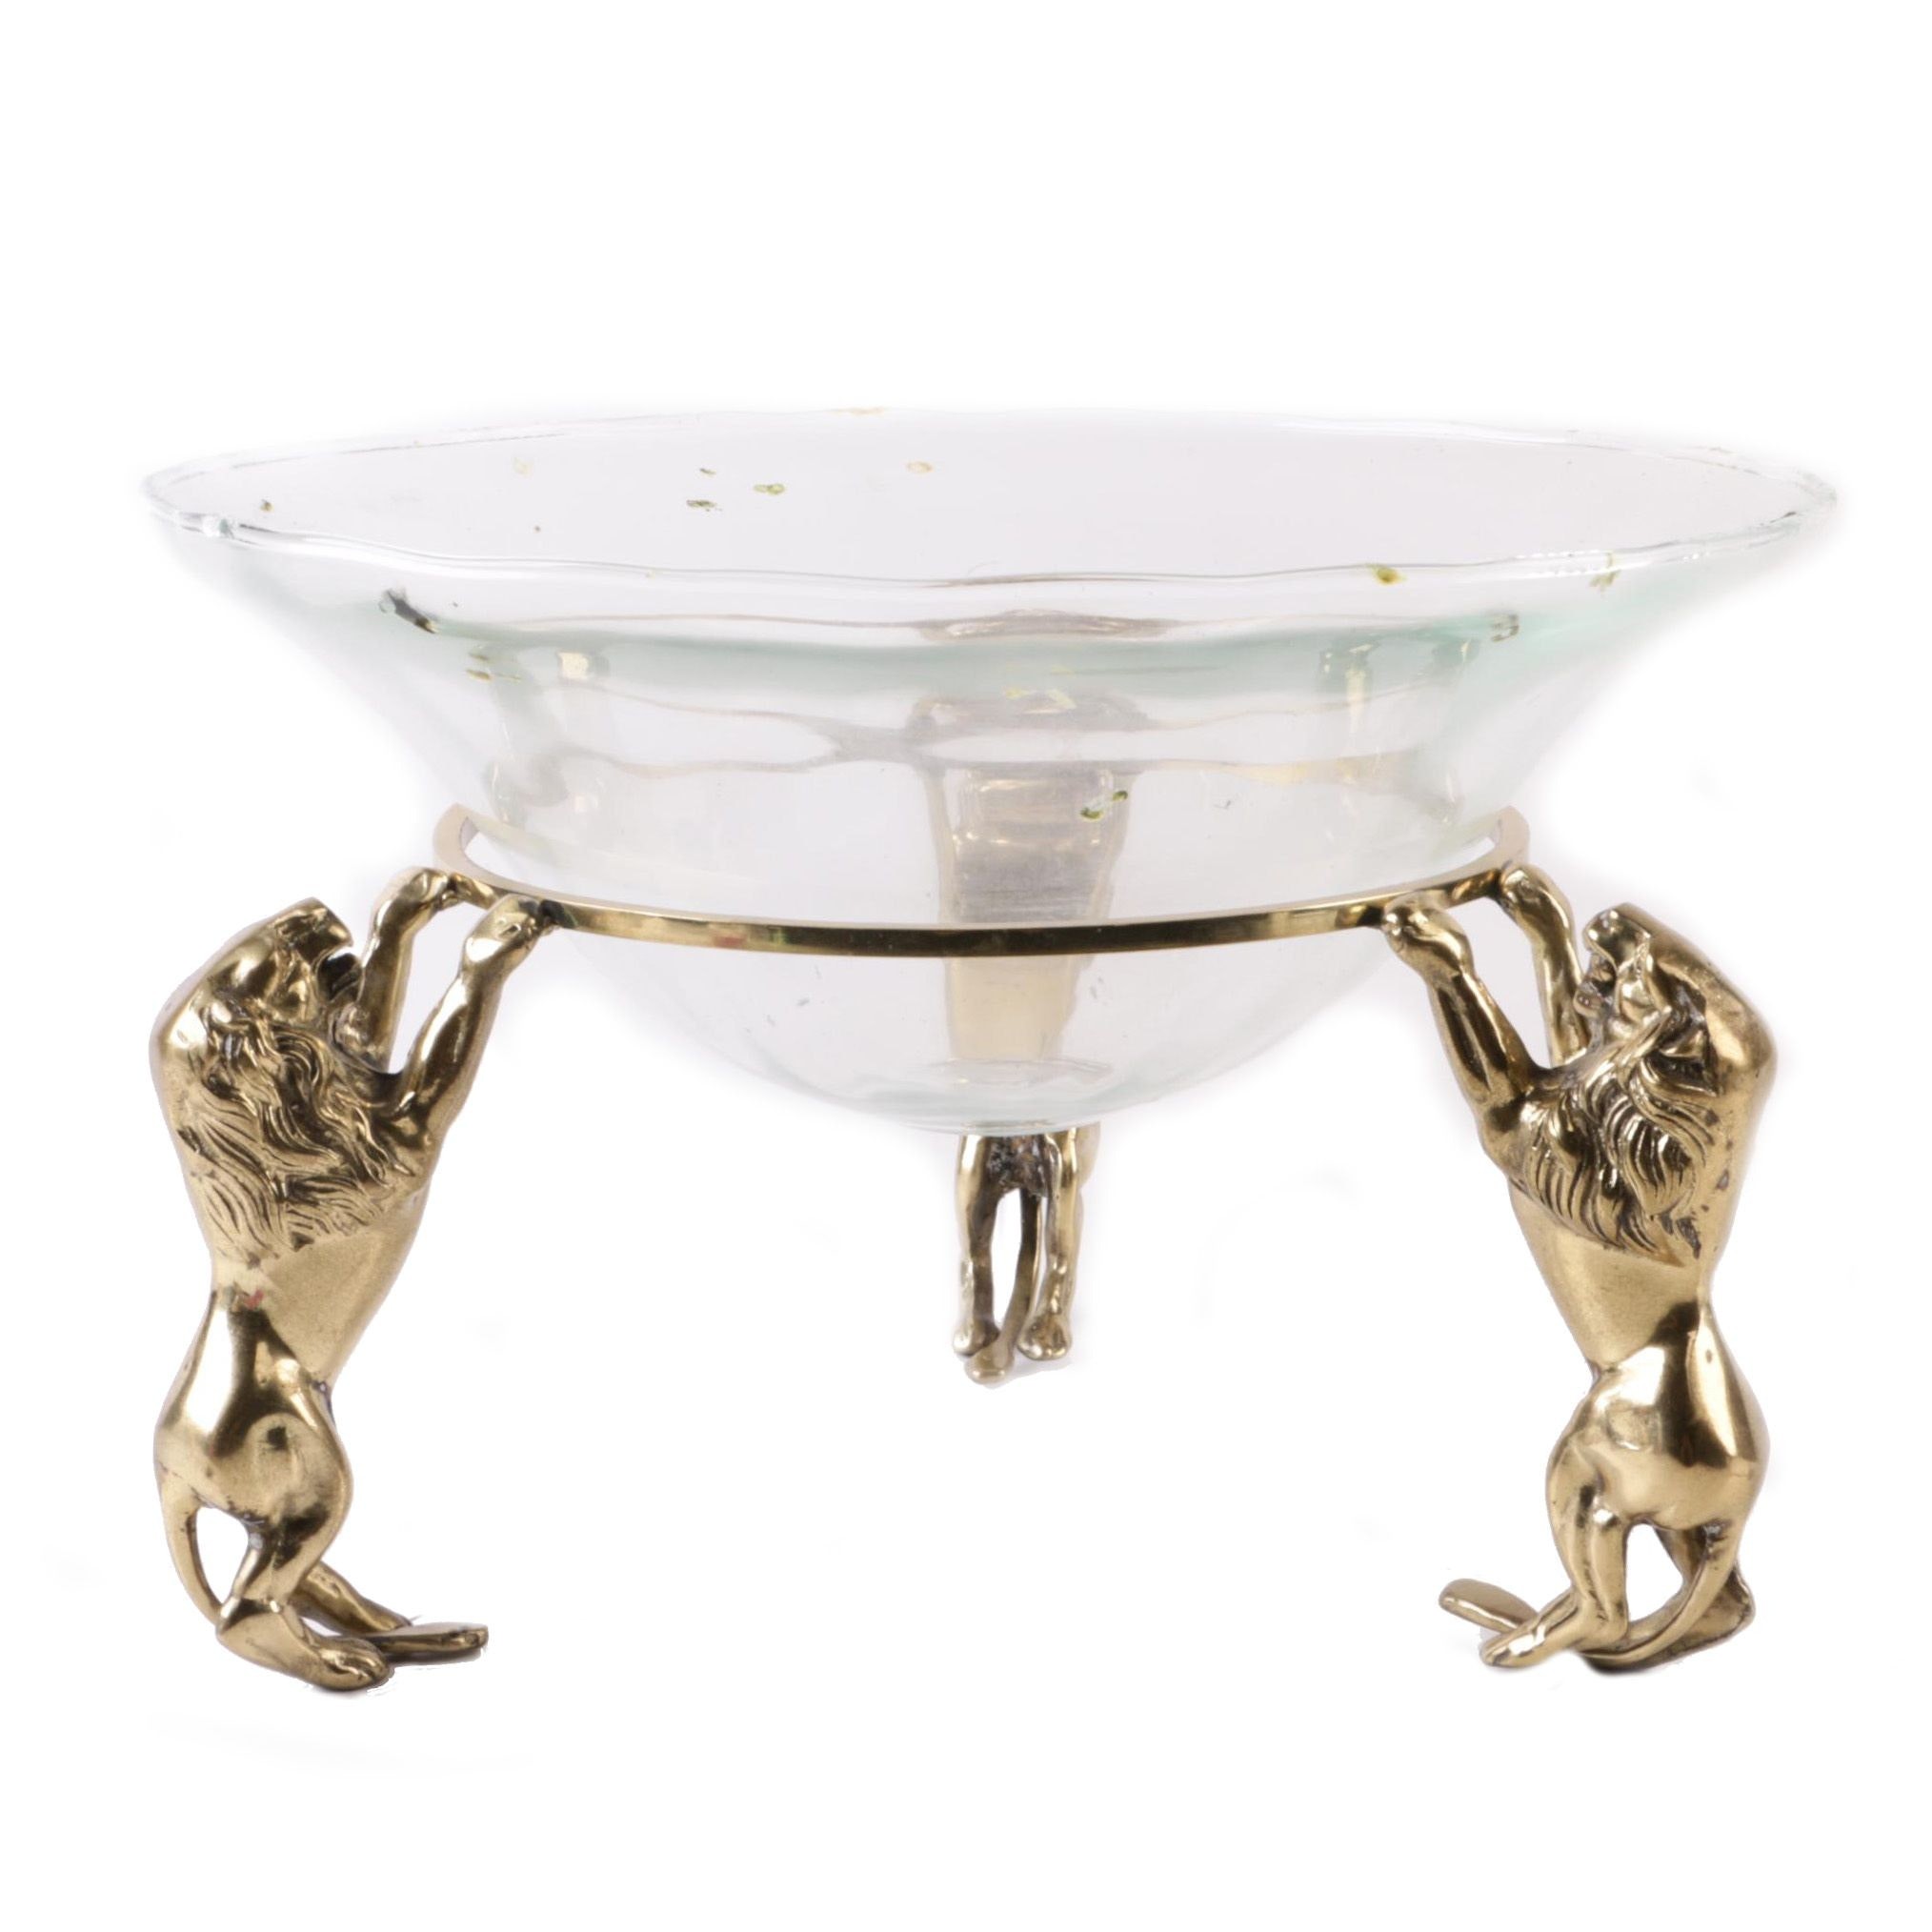 Hand-Blown Glass Bowl with Brass Lion Figural Base